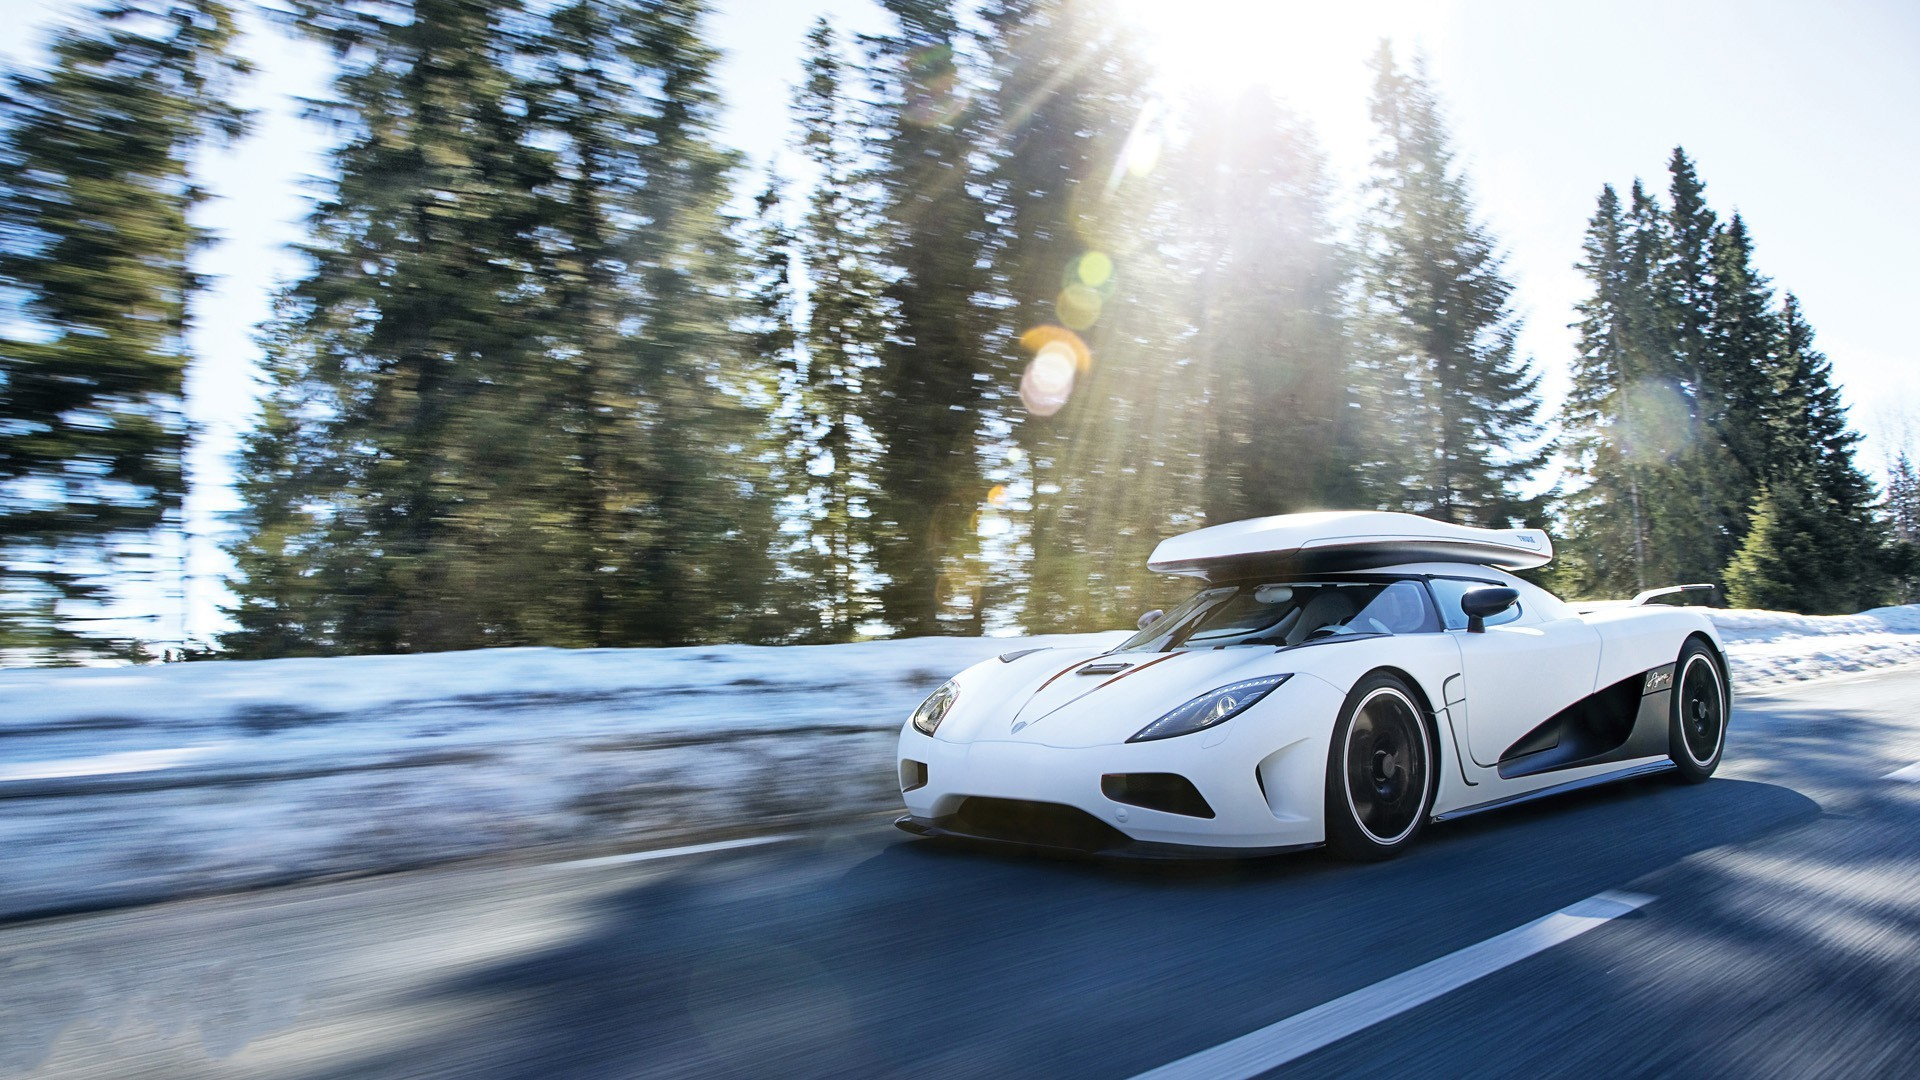 1920x1080 Koenigsegg Agera R, Koenigsegg, Car, Snow Wallpapers HD / Desktop and  Mobile Backgrounds